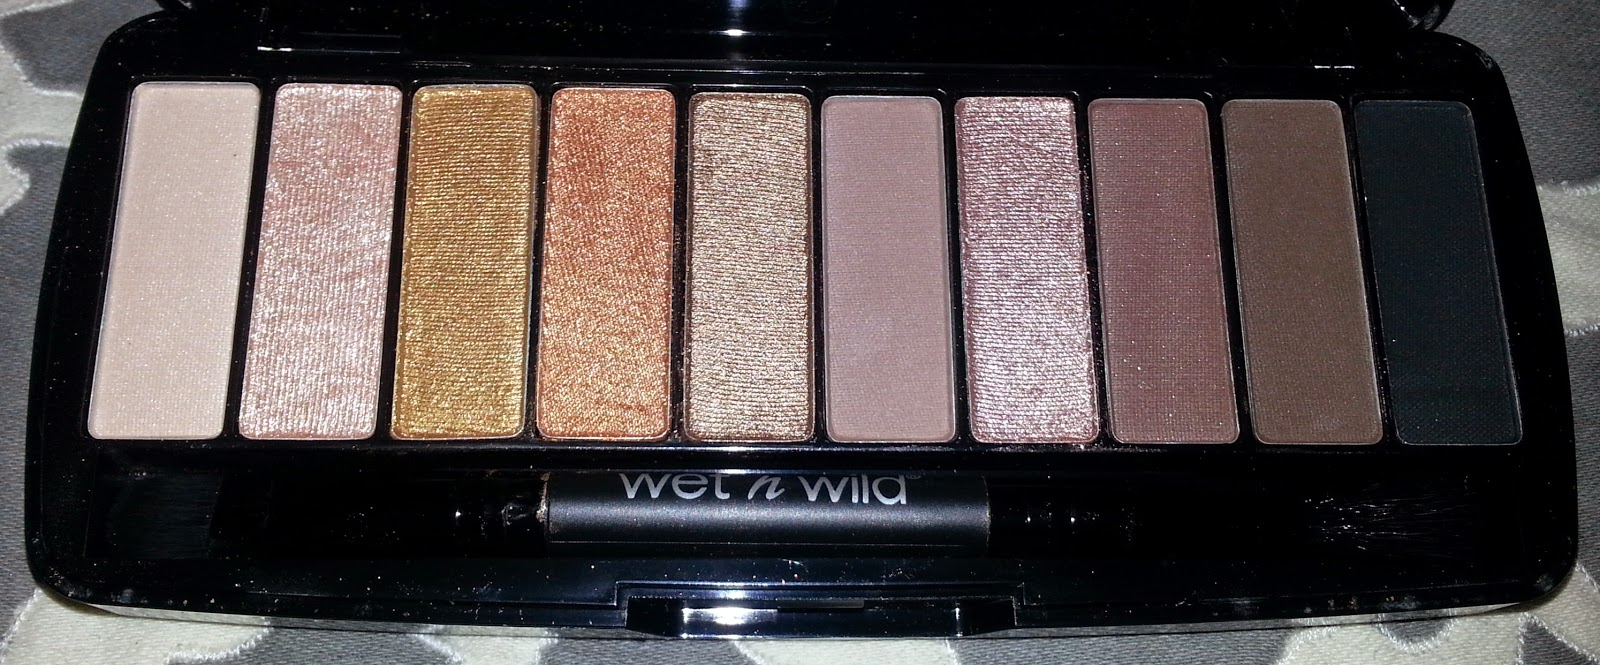 Wet n Wild Fergie Centerstage Eyeshadow Palette in Milano Collection